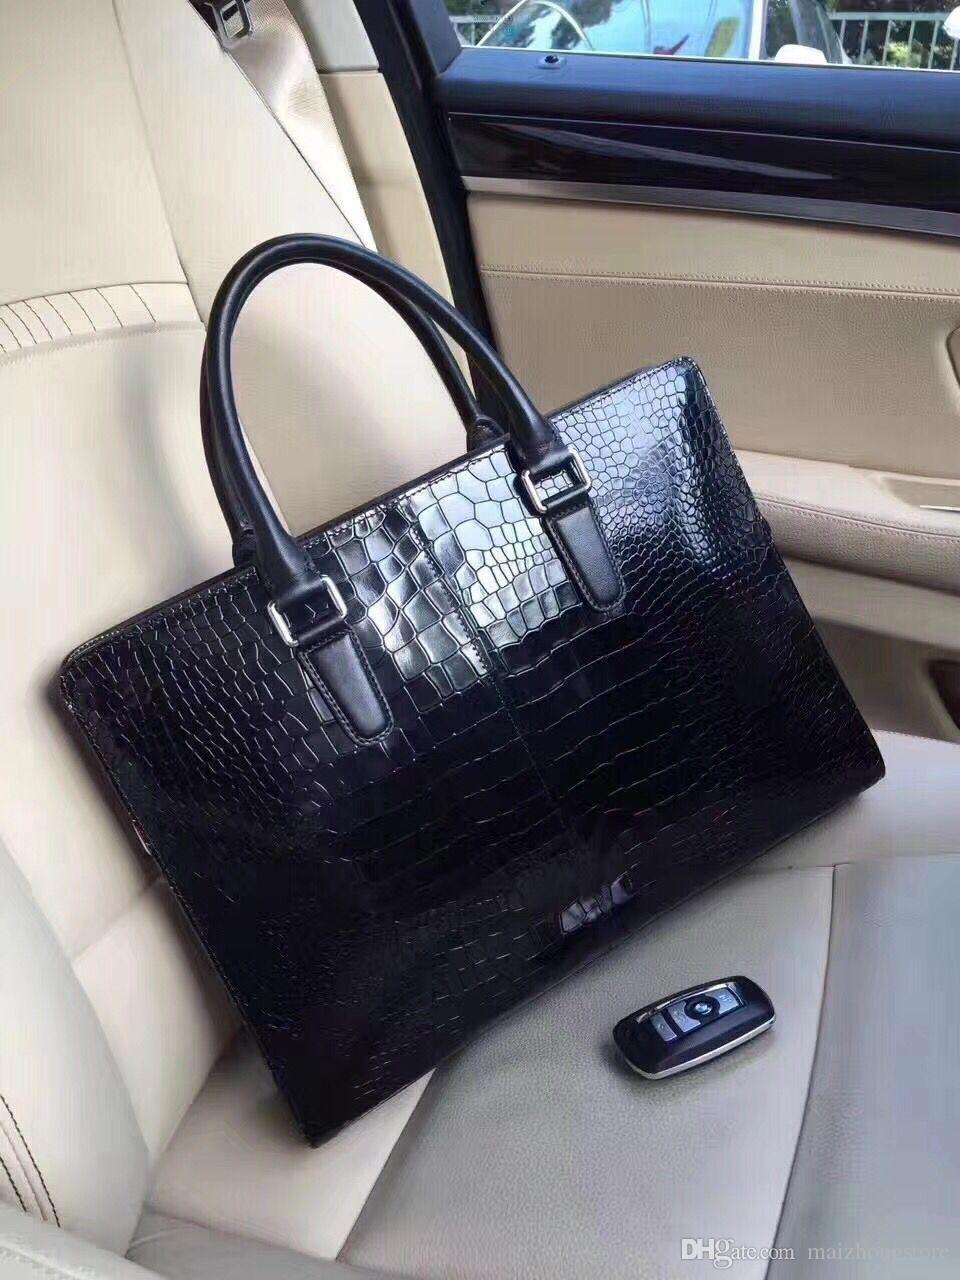 c3ef4fc23401 Designer Handbags New Arrival Patent Leather Alligator Business Handbags  2018 Luxury Bag Fashion Black Women Tote Handags Cute Bags Purses For Women  From ...